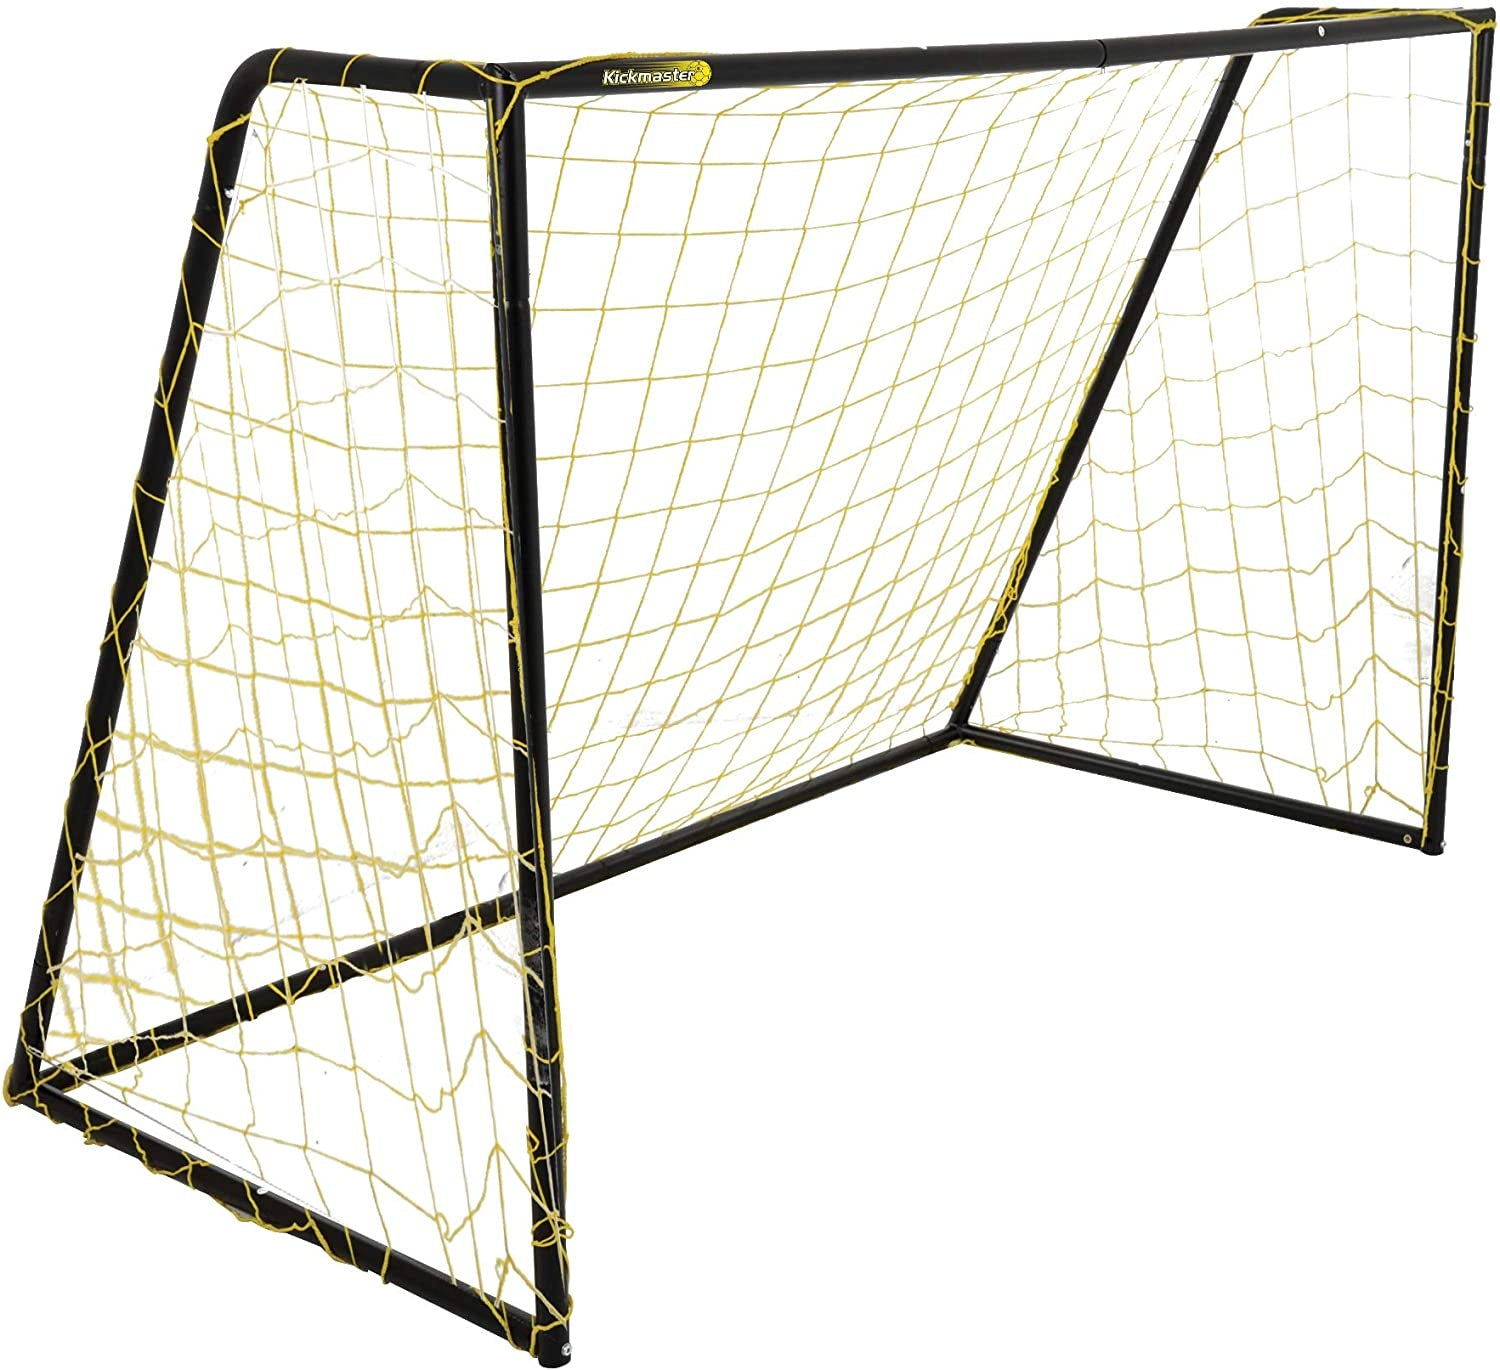 Kickmaster Heavy Duty Performance 7ft Soccer Goal